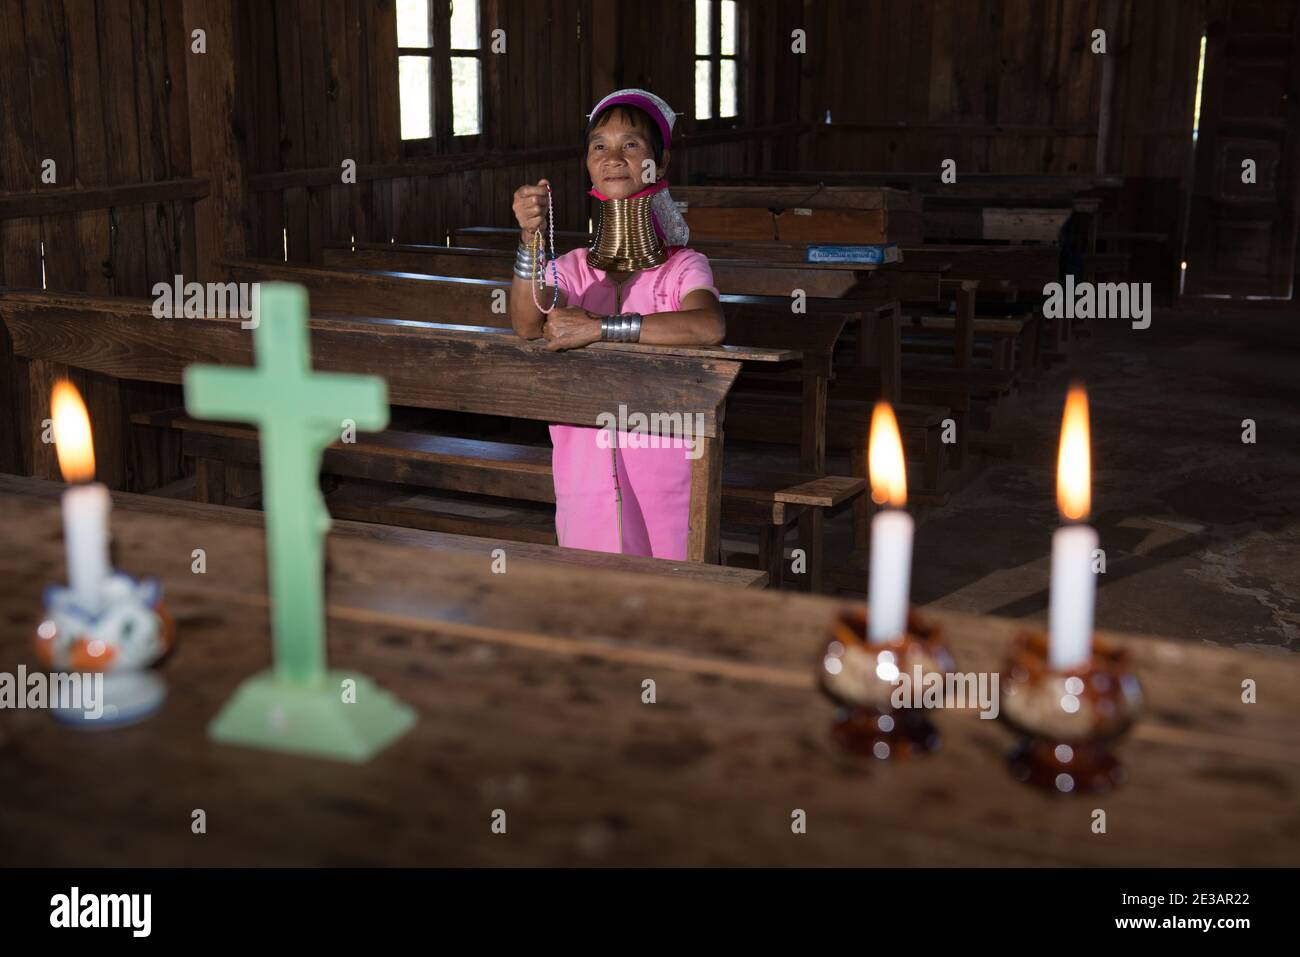 Myanmar, Loikaw, Panpet: Woman of Kayan Lahwi tribe praying the rosary in an old wooden church. Stock Photo